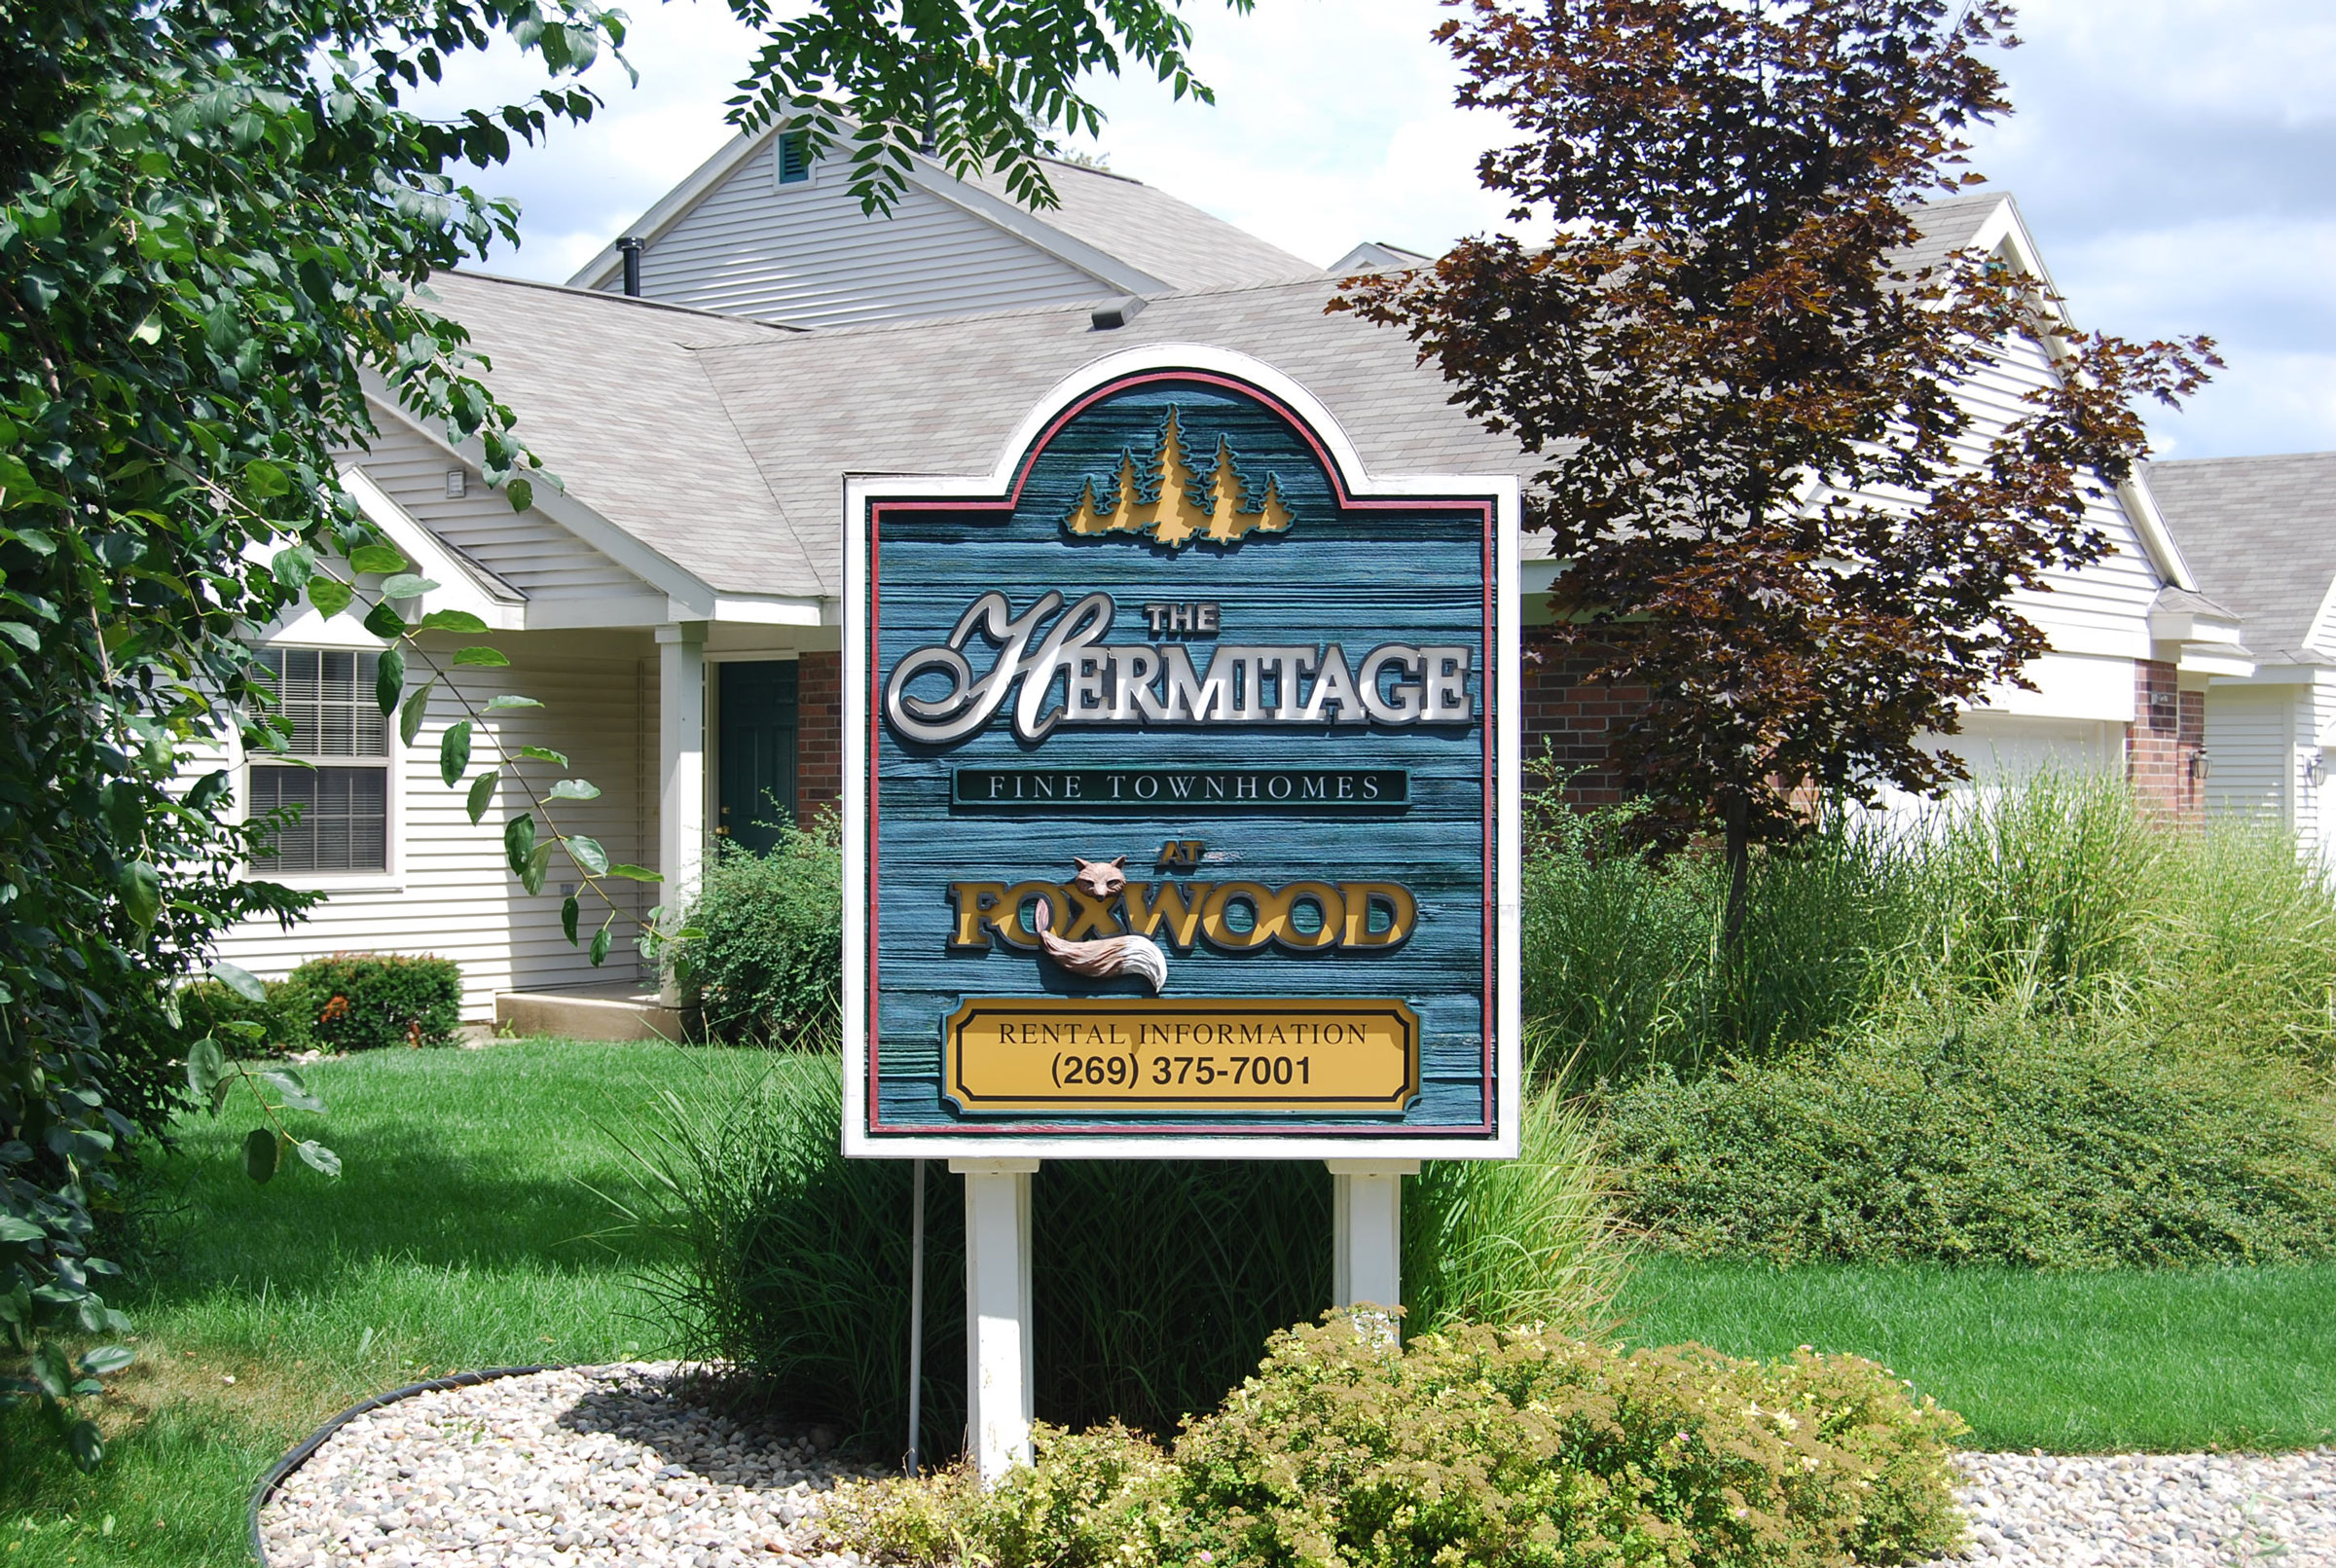 The Hermitage Townhomes